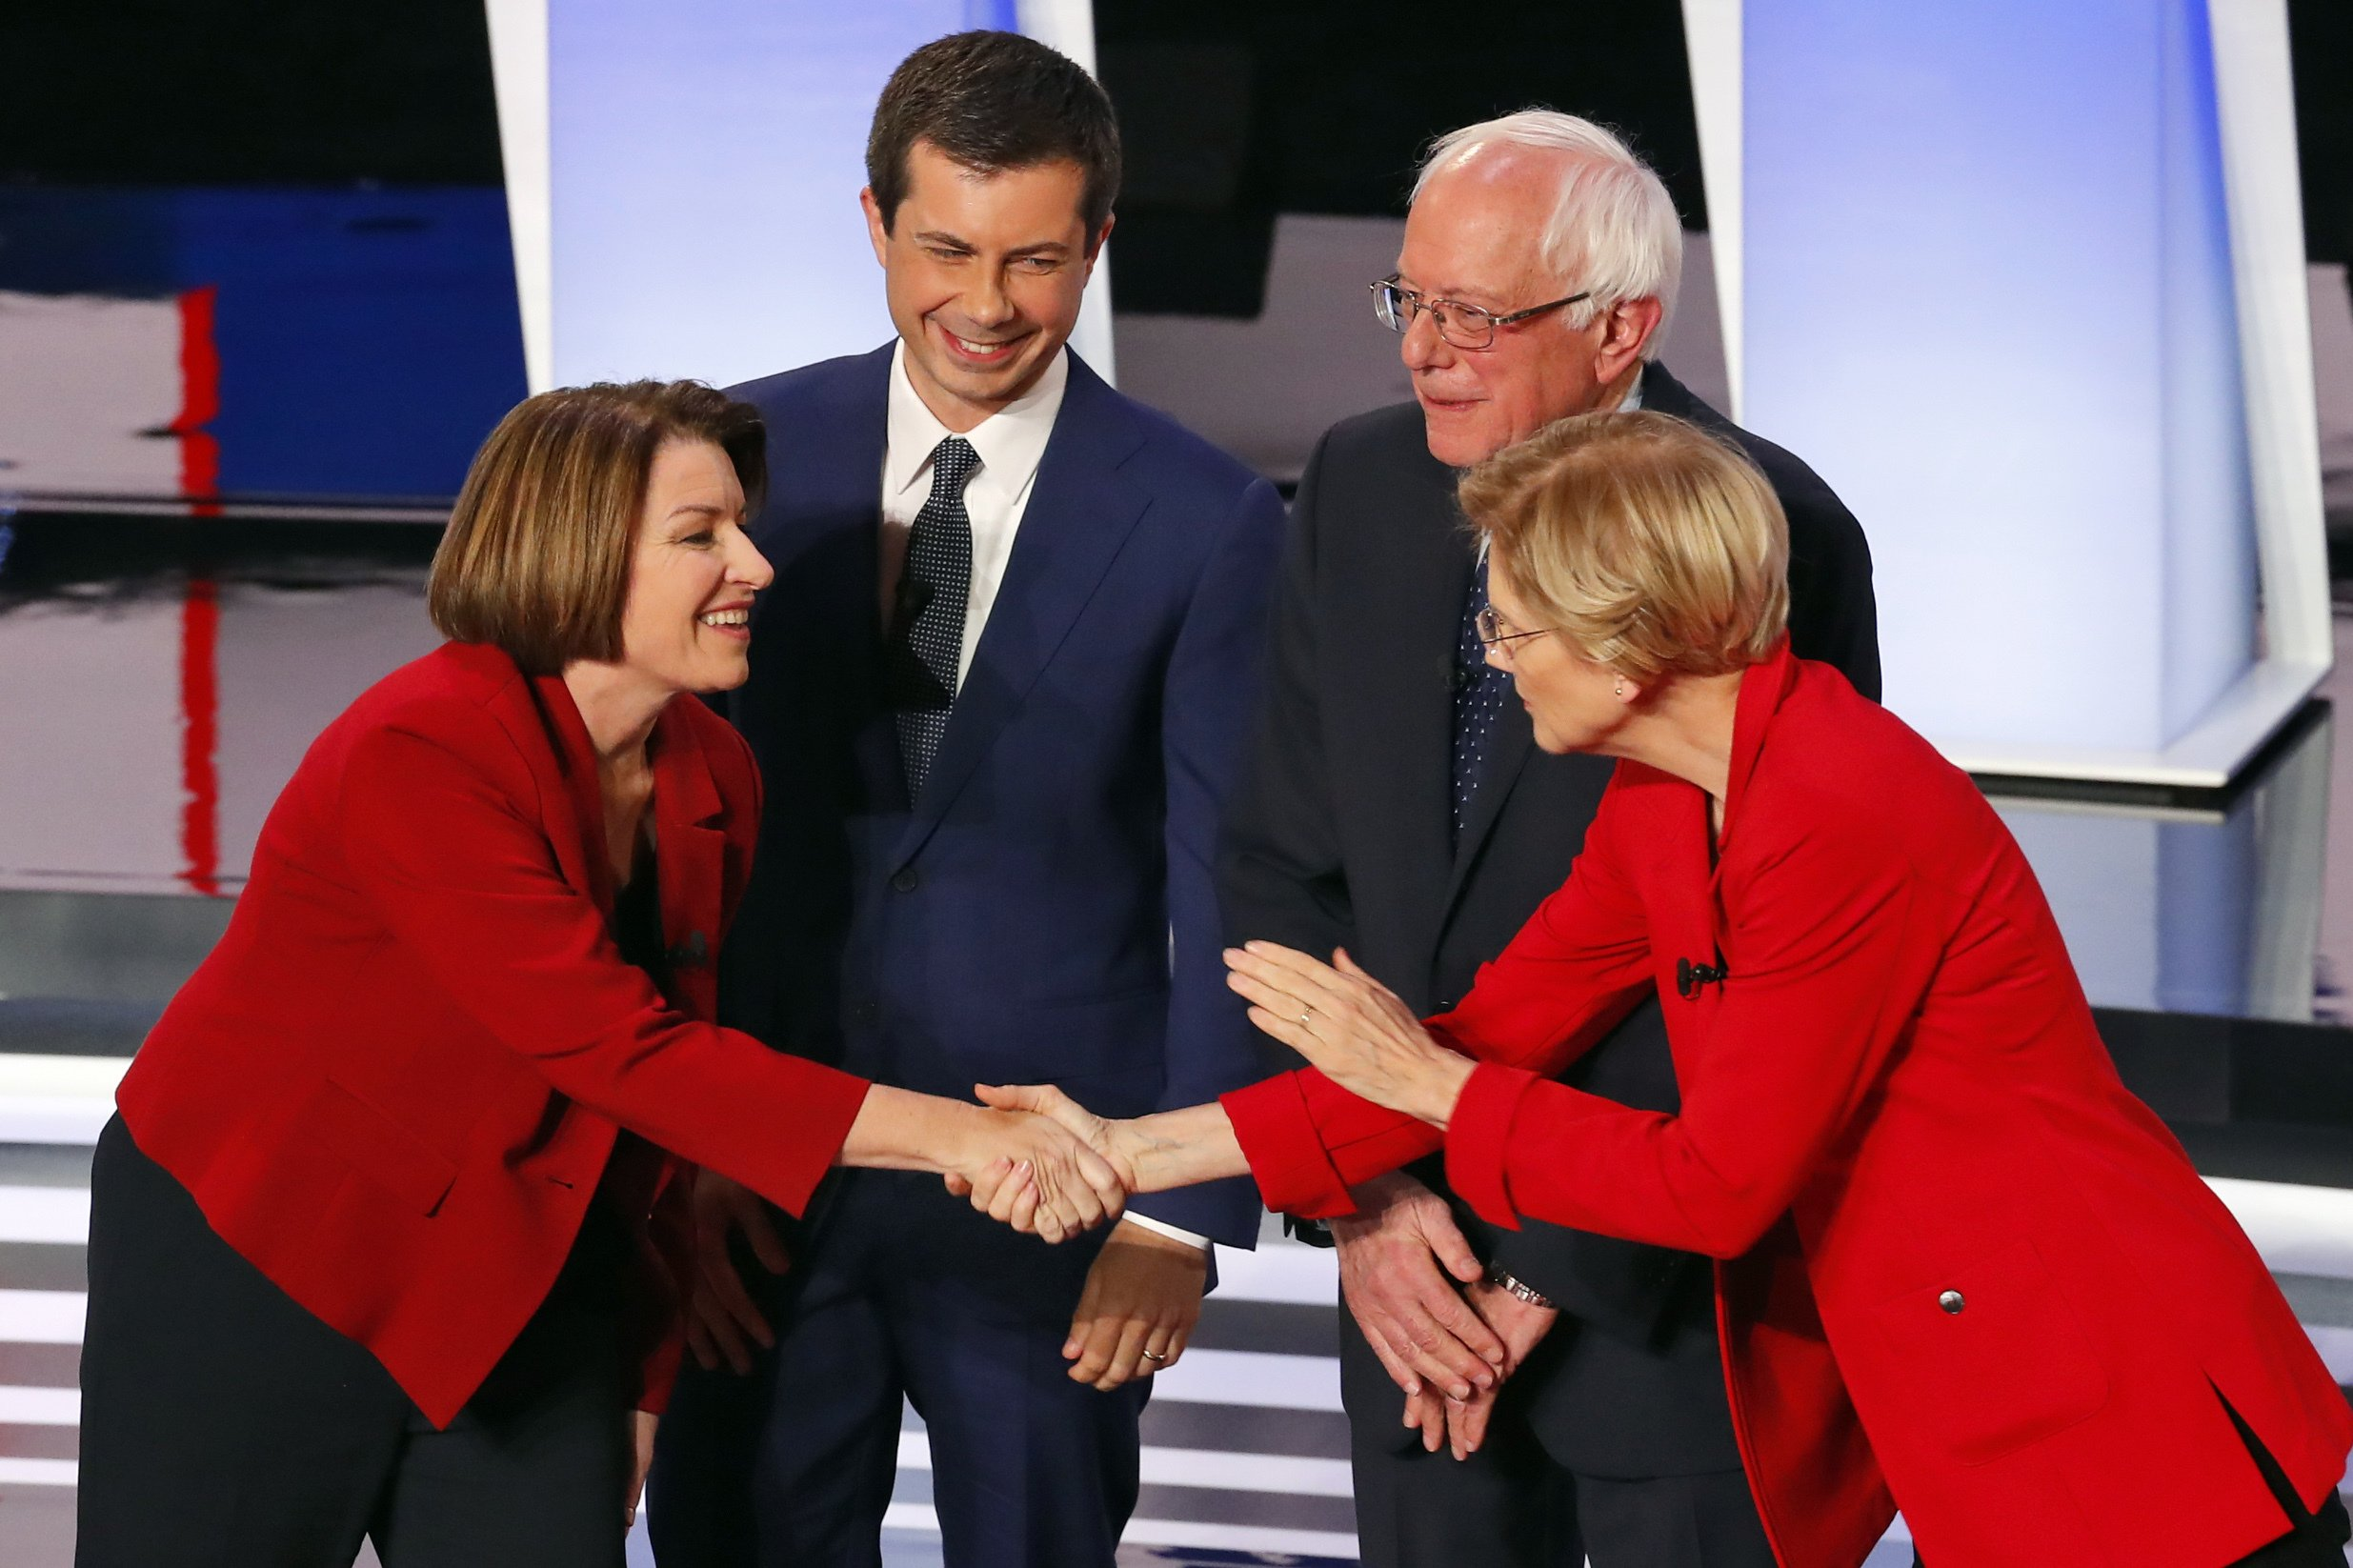 Democrats diverge on outreach to anti-abortion swing voters thumbnail